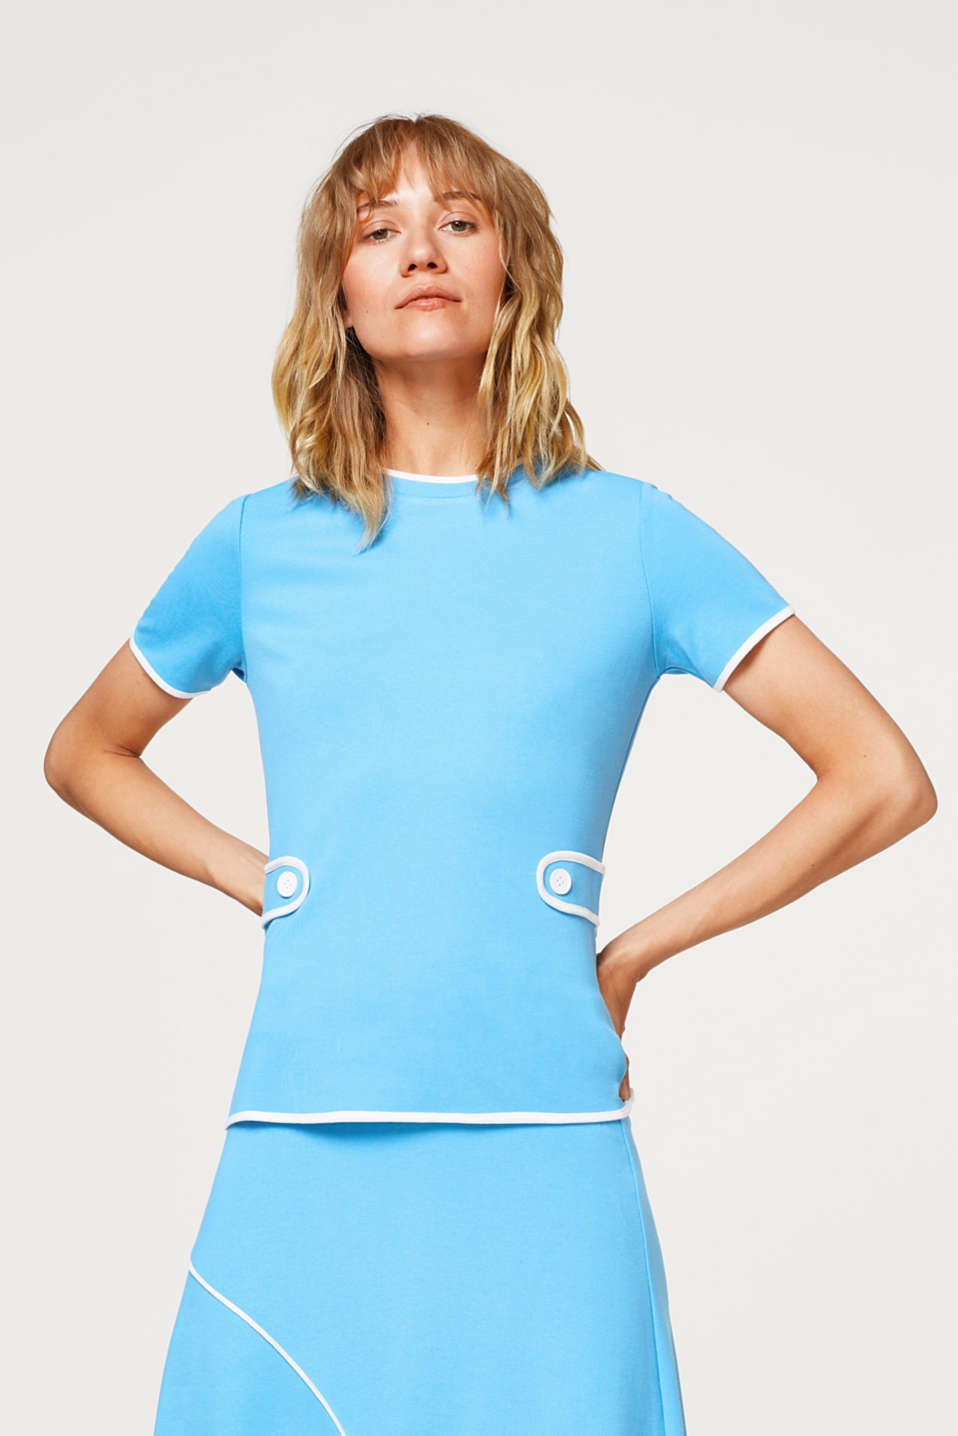 Esprit - Dense stretch jersey tee with a retro vibe and piping